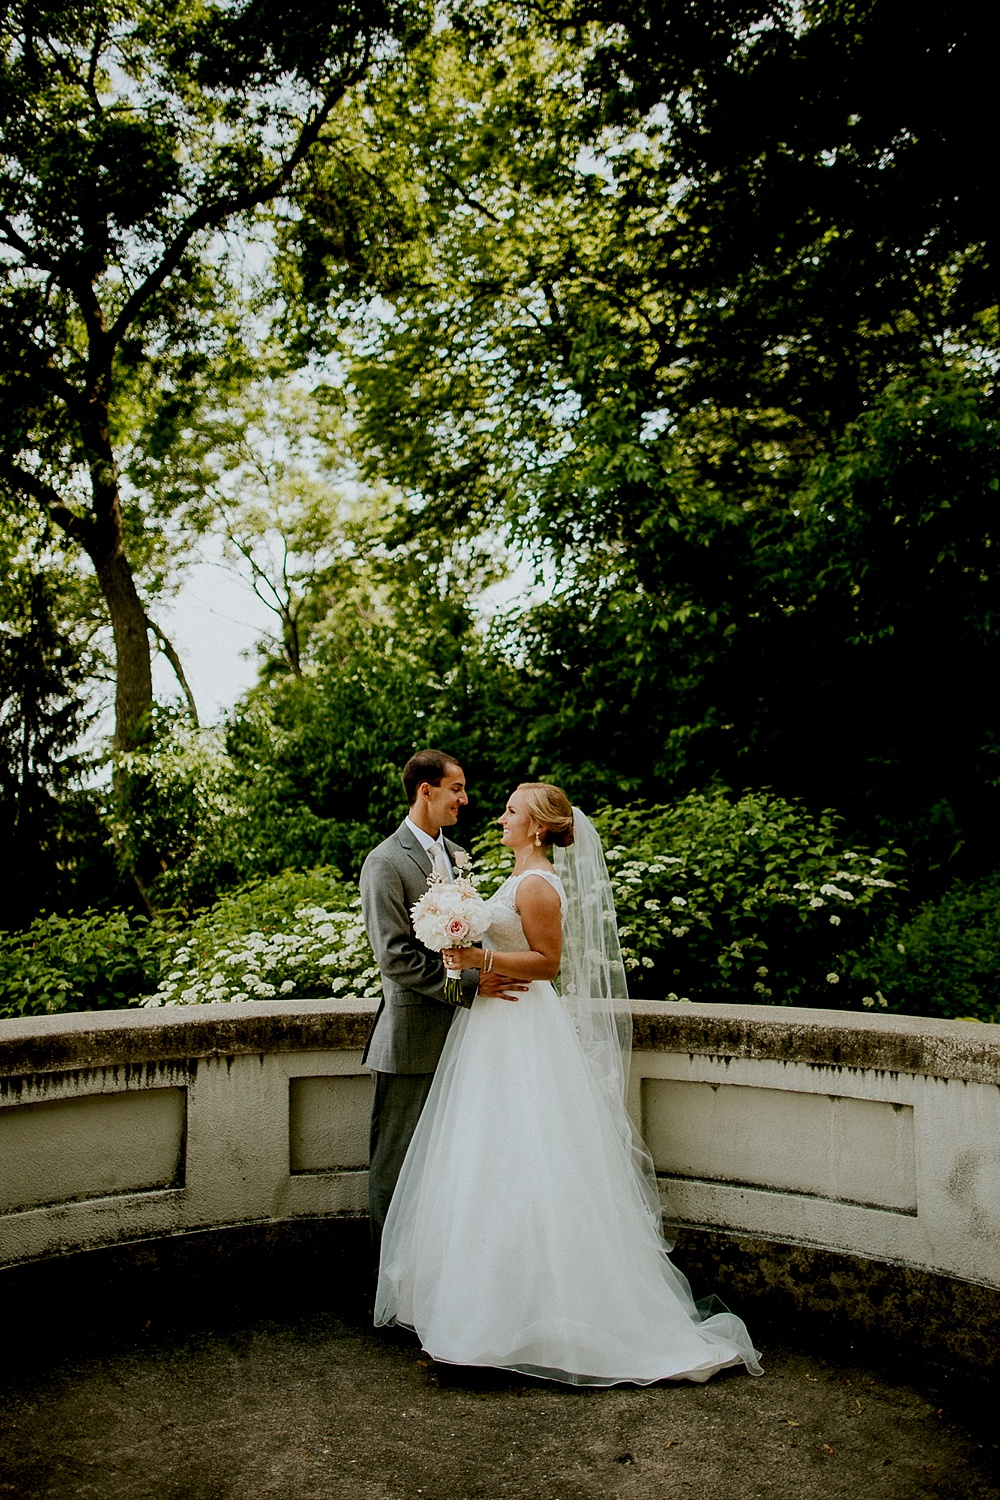 Lake Park Wedding - Milwaukee Wedding Photographer